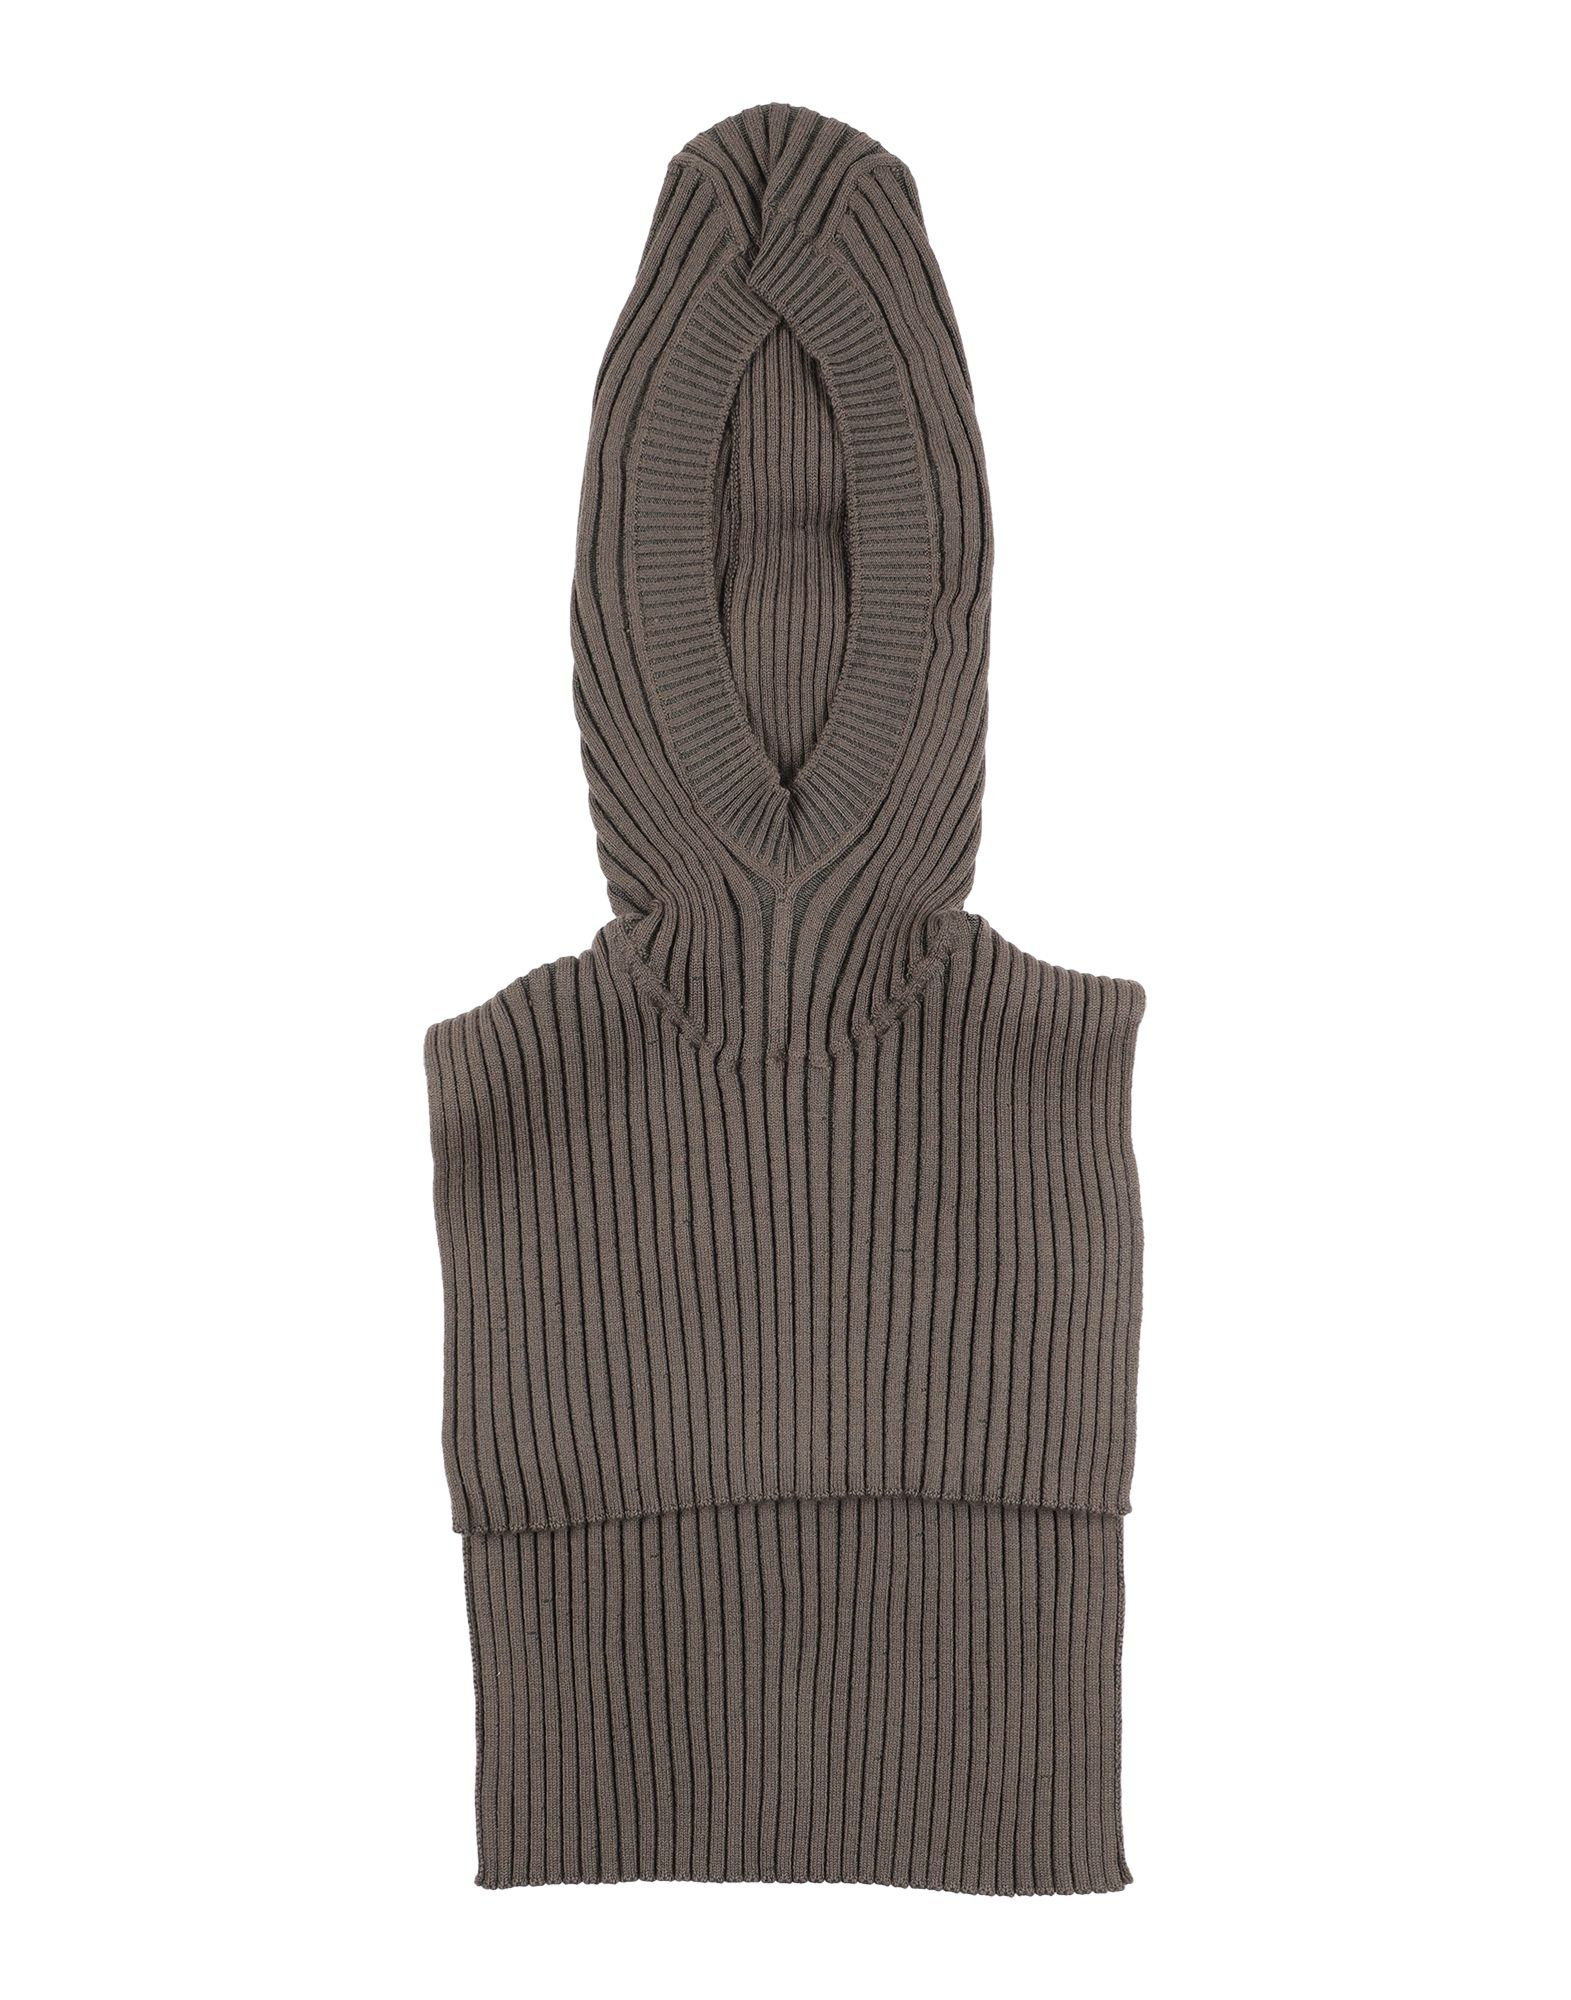 MM6 MAISON MARGIELA Hats. knitted, no appliqués, basic solid color, lightweight sweater, unlined. 48% Wool, 47% Acrylic, 4% Polyamide, 1% Elastane